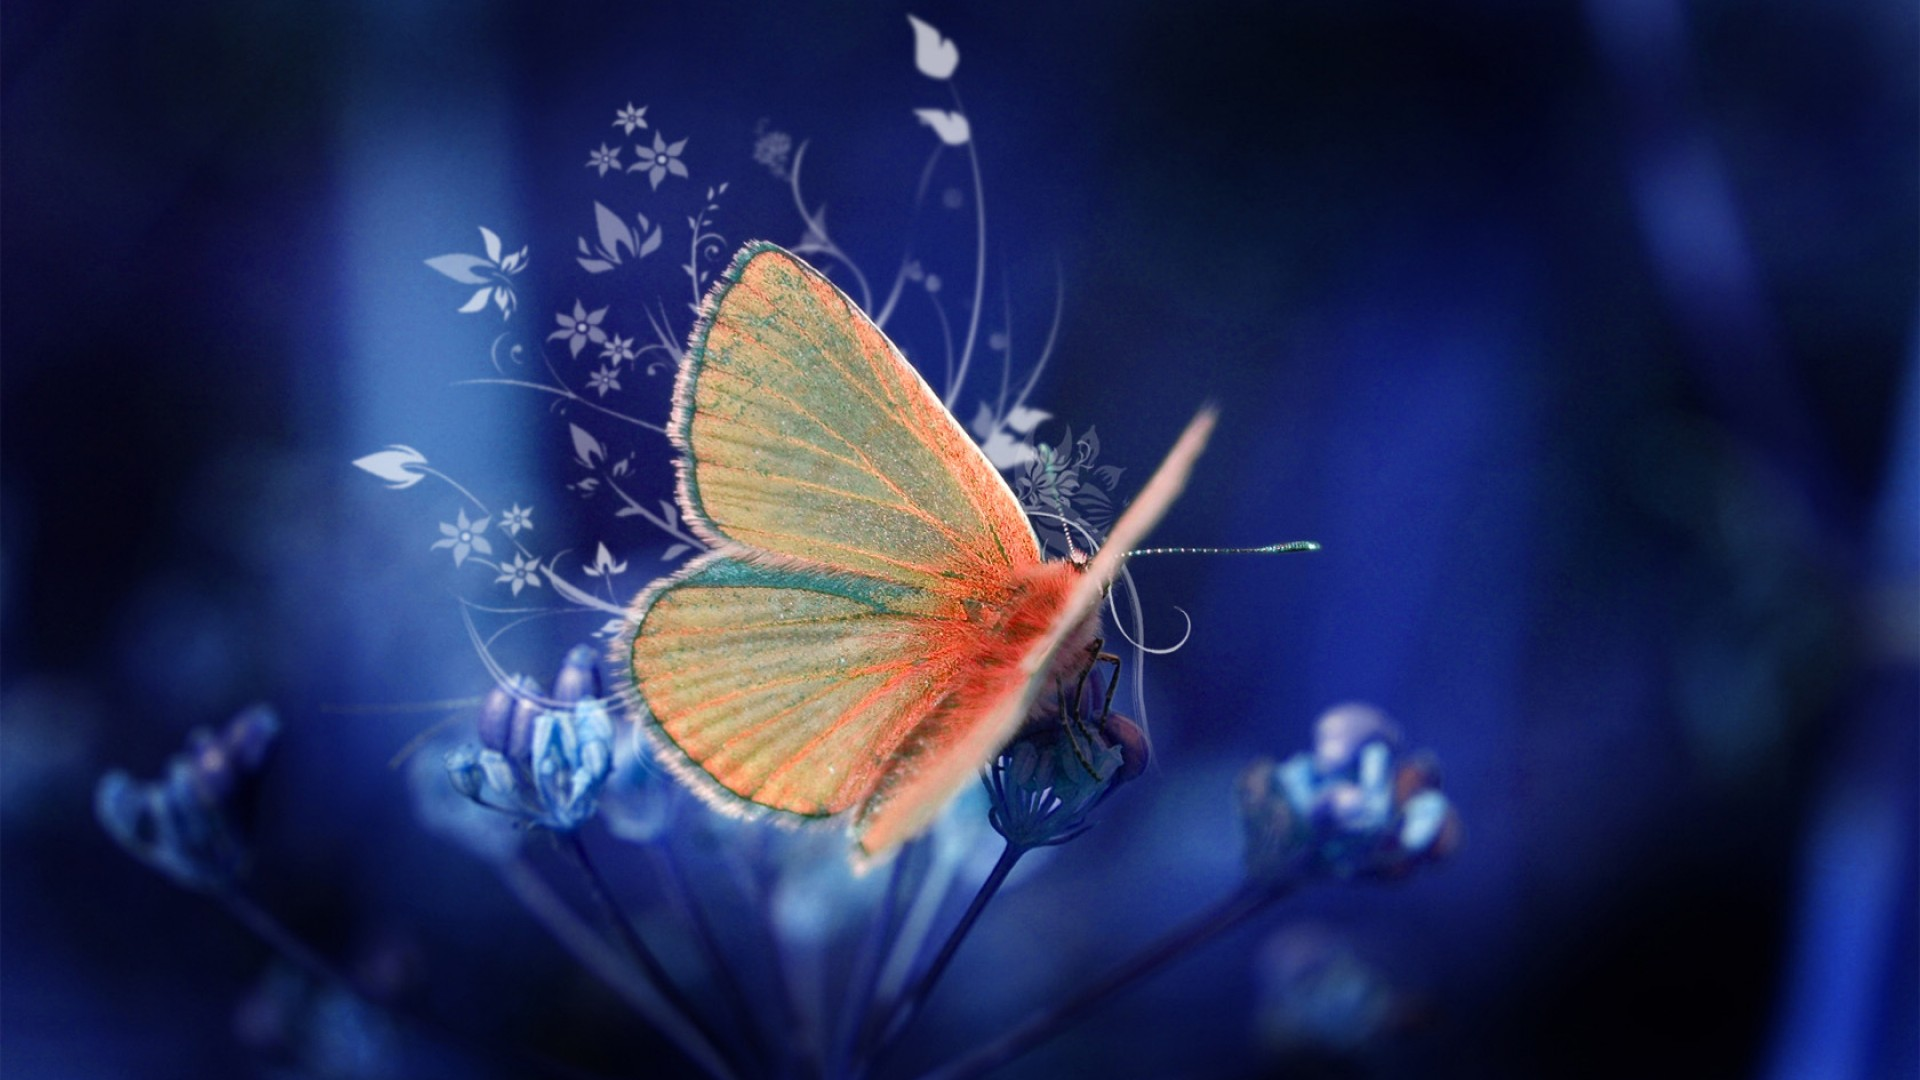 Butterfly Wallpaper HD 19201080 For Desktop 1920x1080